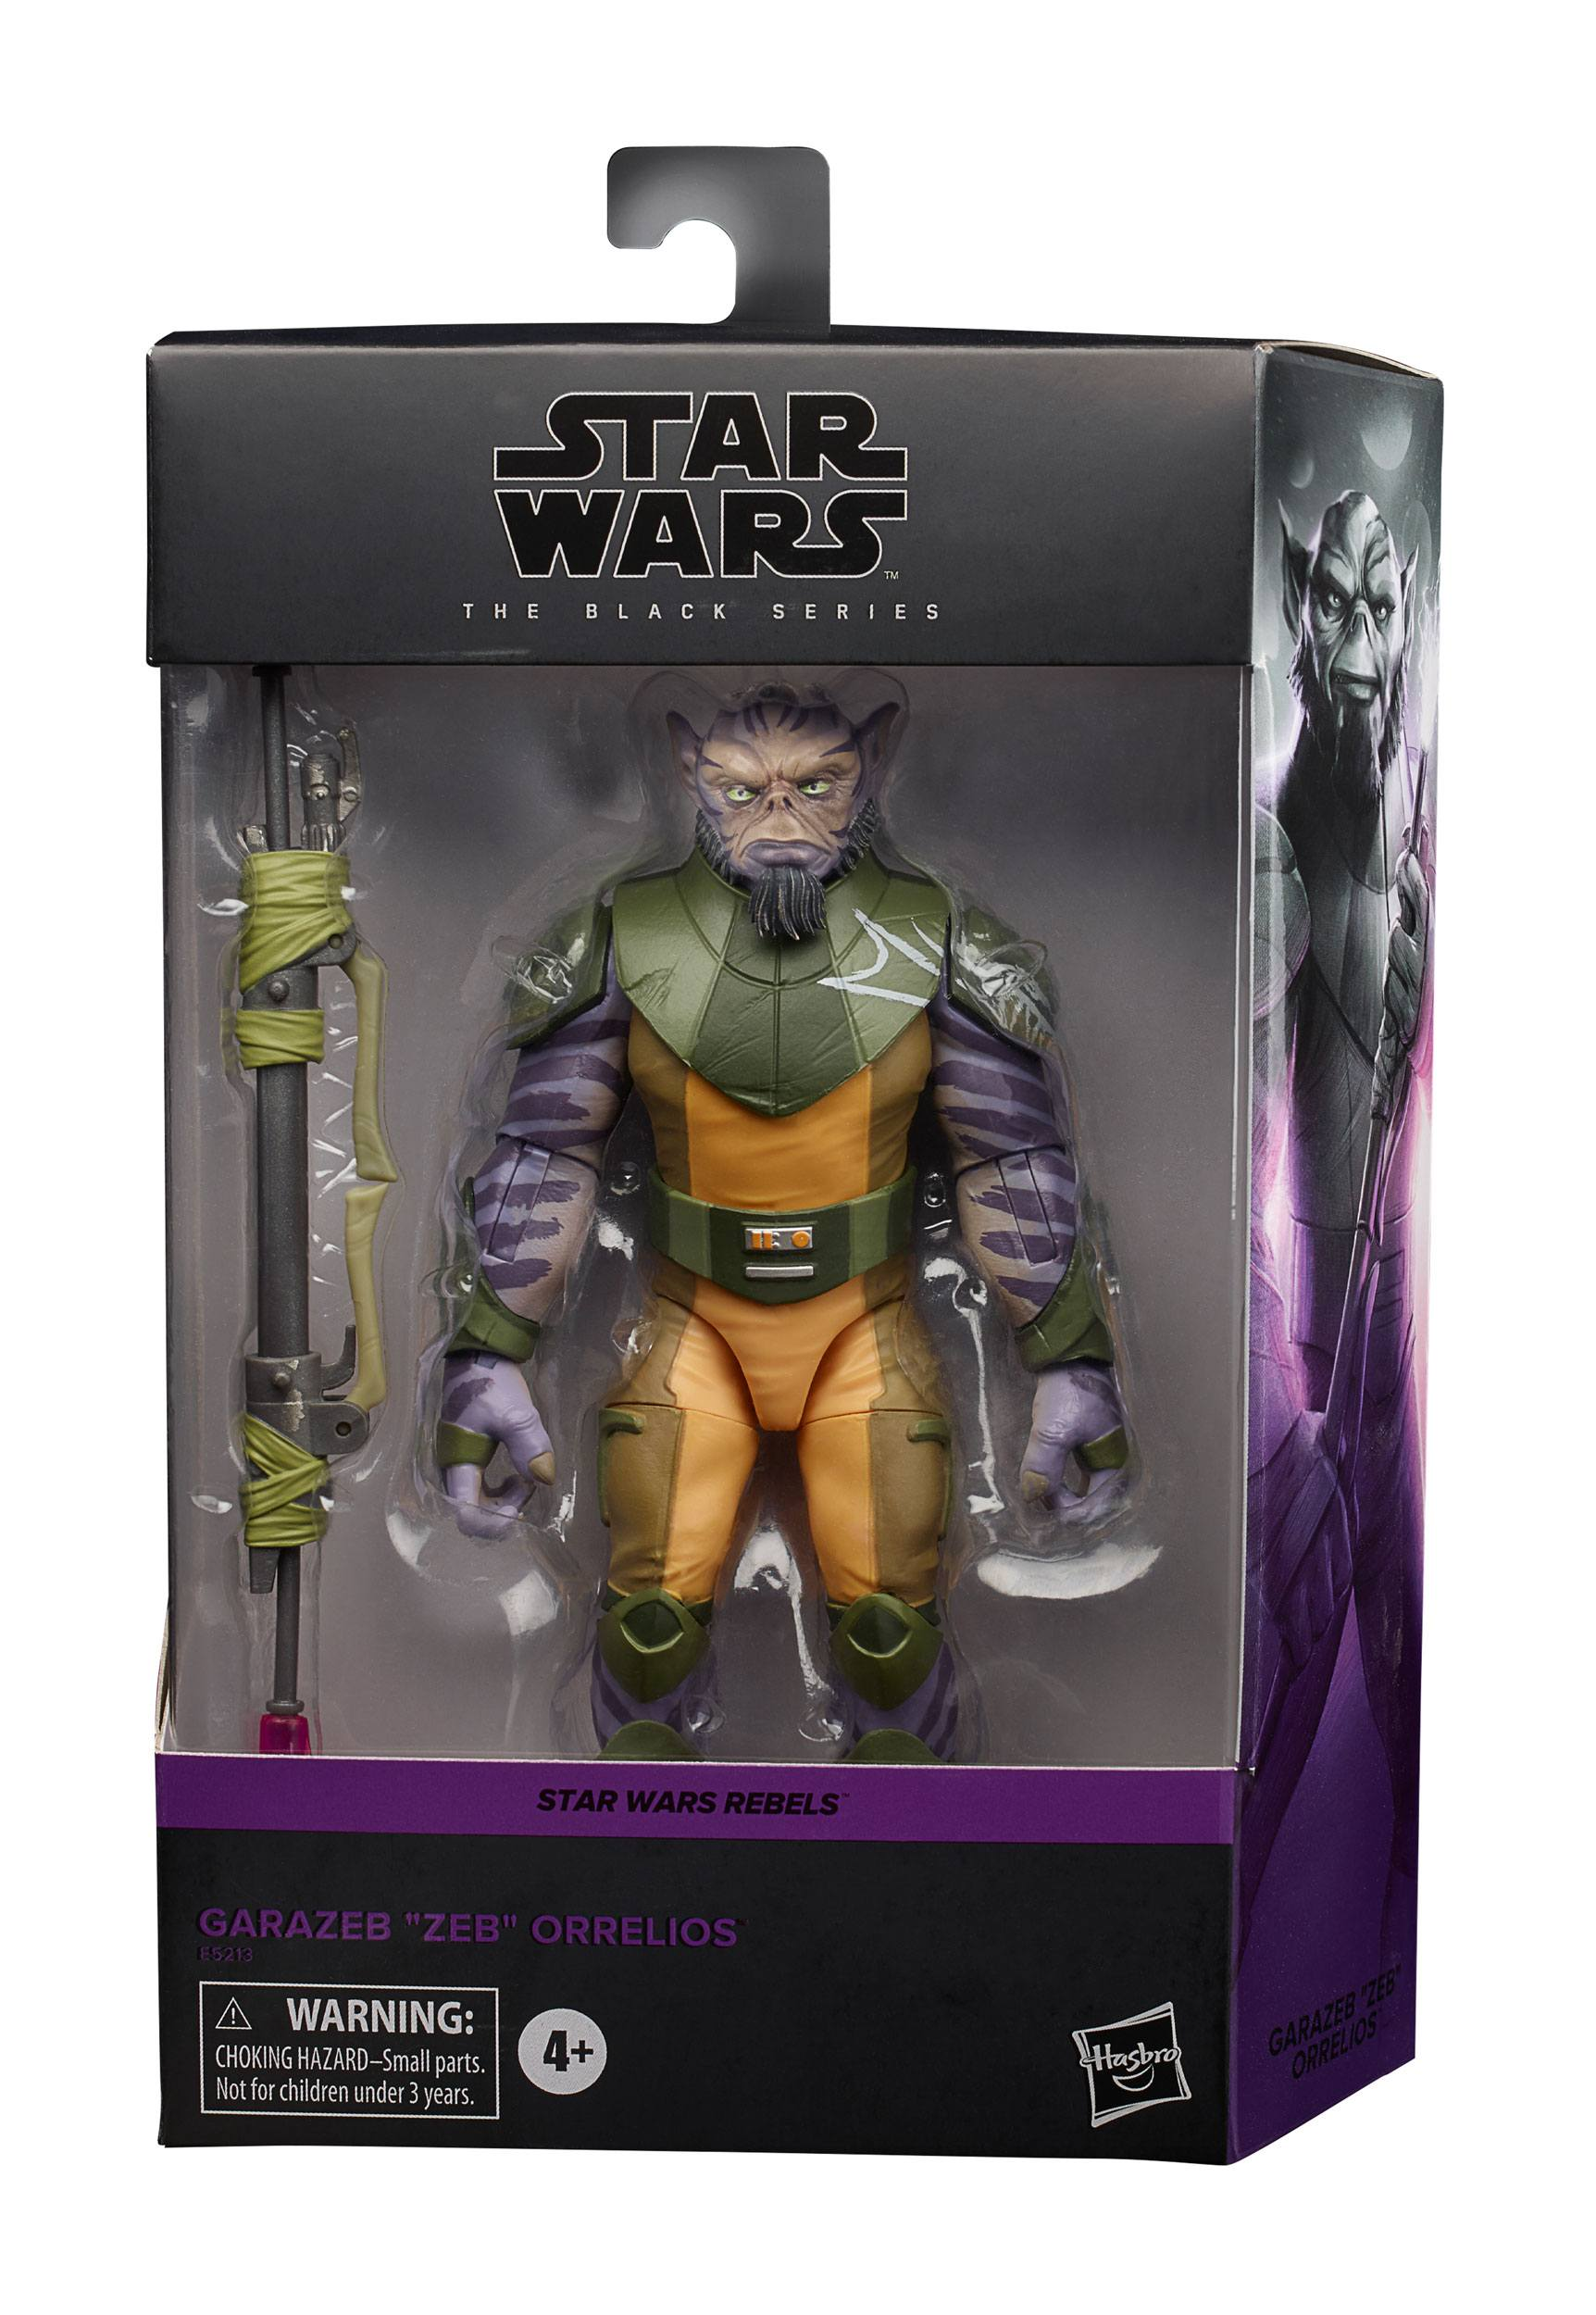 Star Wars Rebels Black Series Deluxe Actionfigur 2020 Garazeb Zeb Orrelios 15 cm HASE5213 5010993699636